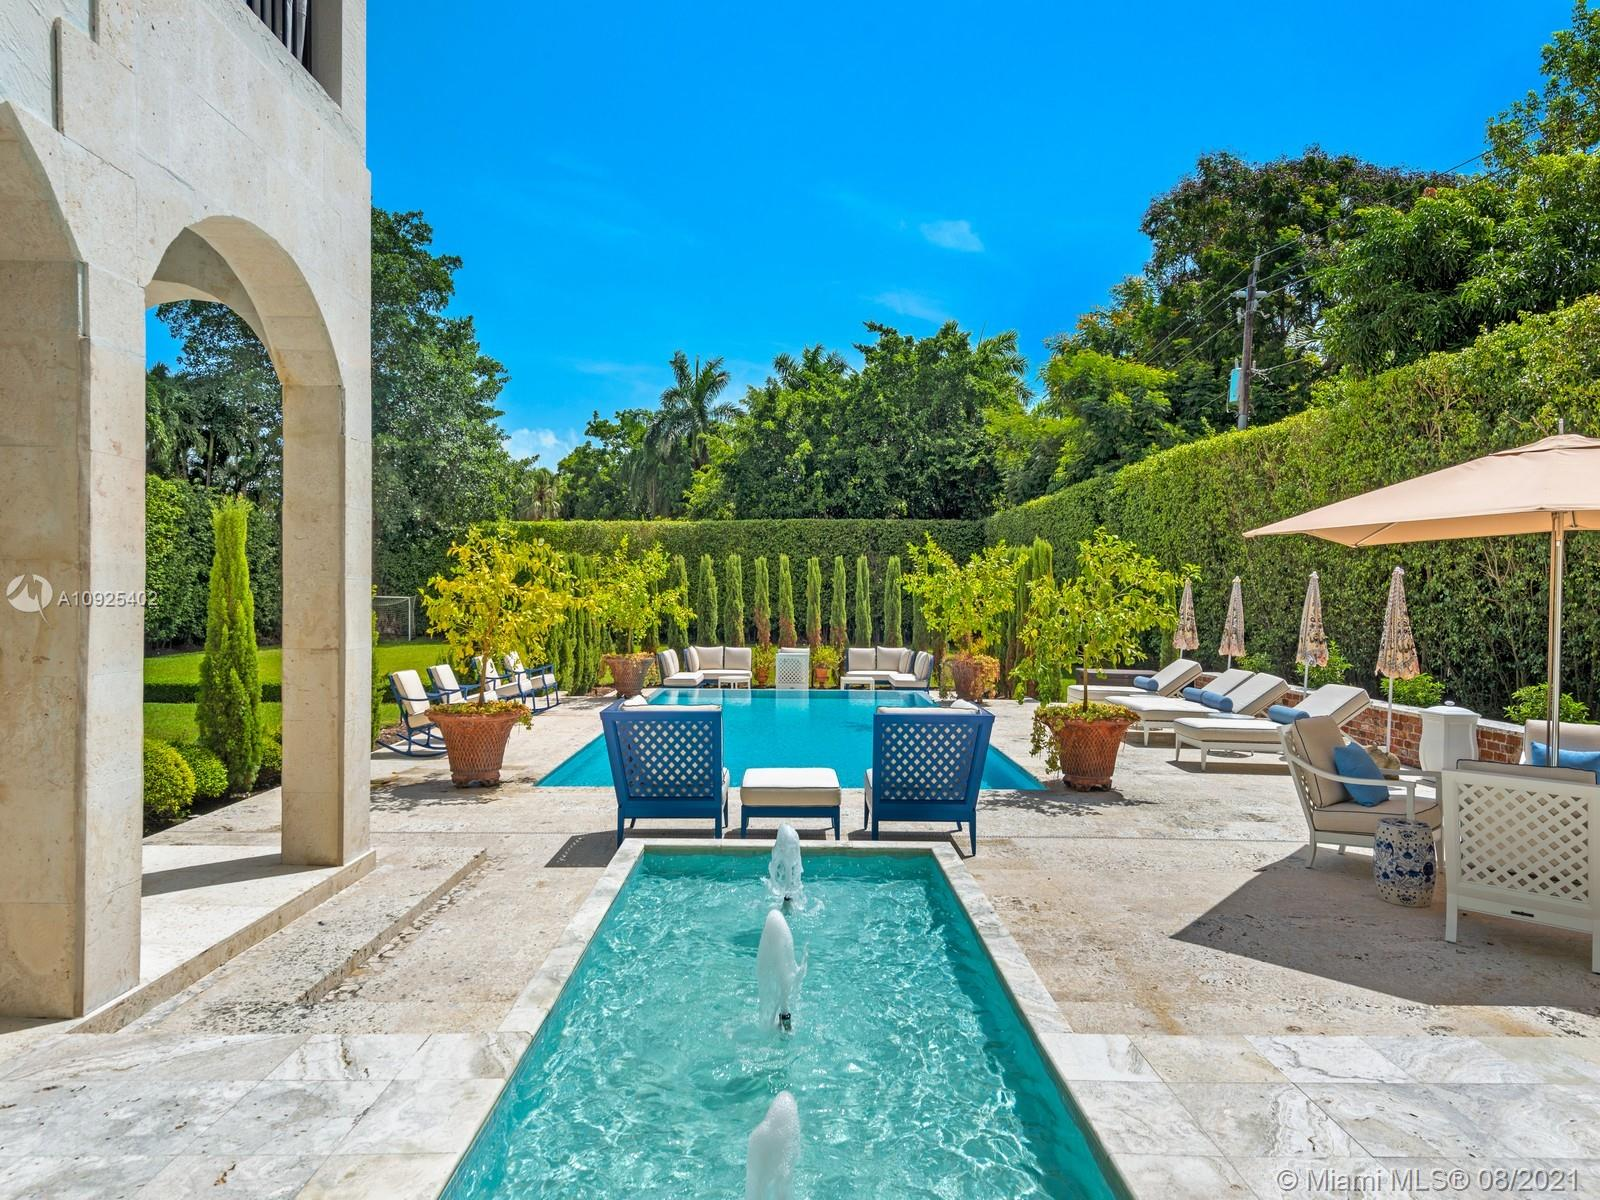 Extraordinary GATED home ideally located in the coveted area of PONCE DAVIS. Minutes from Miami's best schools this ONE ACRE property is the ideal family home filled with character & charm.This 8,322 SF home offers 6 beds,7.1 brand new baths in a desirable layout generously spread across two levels.Ground floor features recently updated oversized gourmet kitchen w/double islands,top of the line industrial walk in fridge&freezer+Wolf appliances,this kitchen is a Chef's dream,formal &Informal living+dinning rooms,guest suite,service quarters & more!Upstairs offers master suite w/oversized walkin closet,updated master bath & a terrace overlooking the grounds+3 additional beds w/ensuite baths &walkin closets.W/beautiful landscaped gardens,edge pool &full bbq,this home is an entertainers dream!